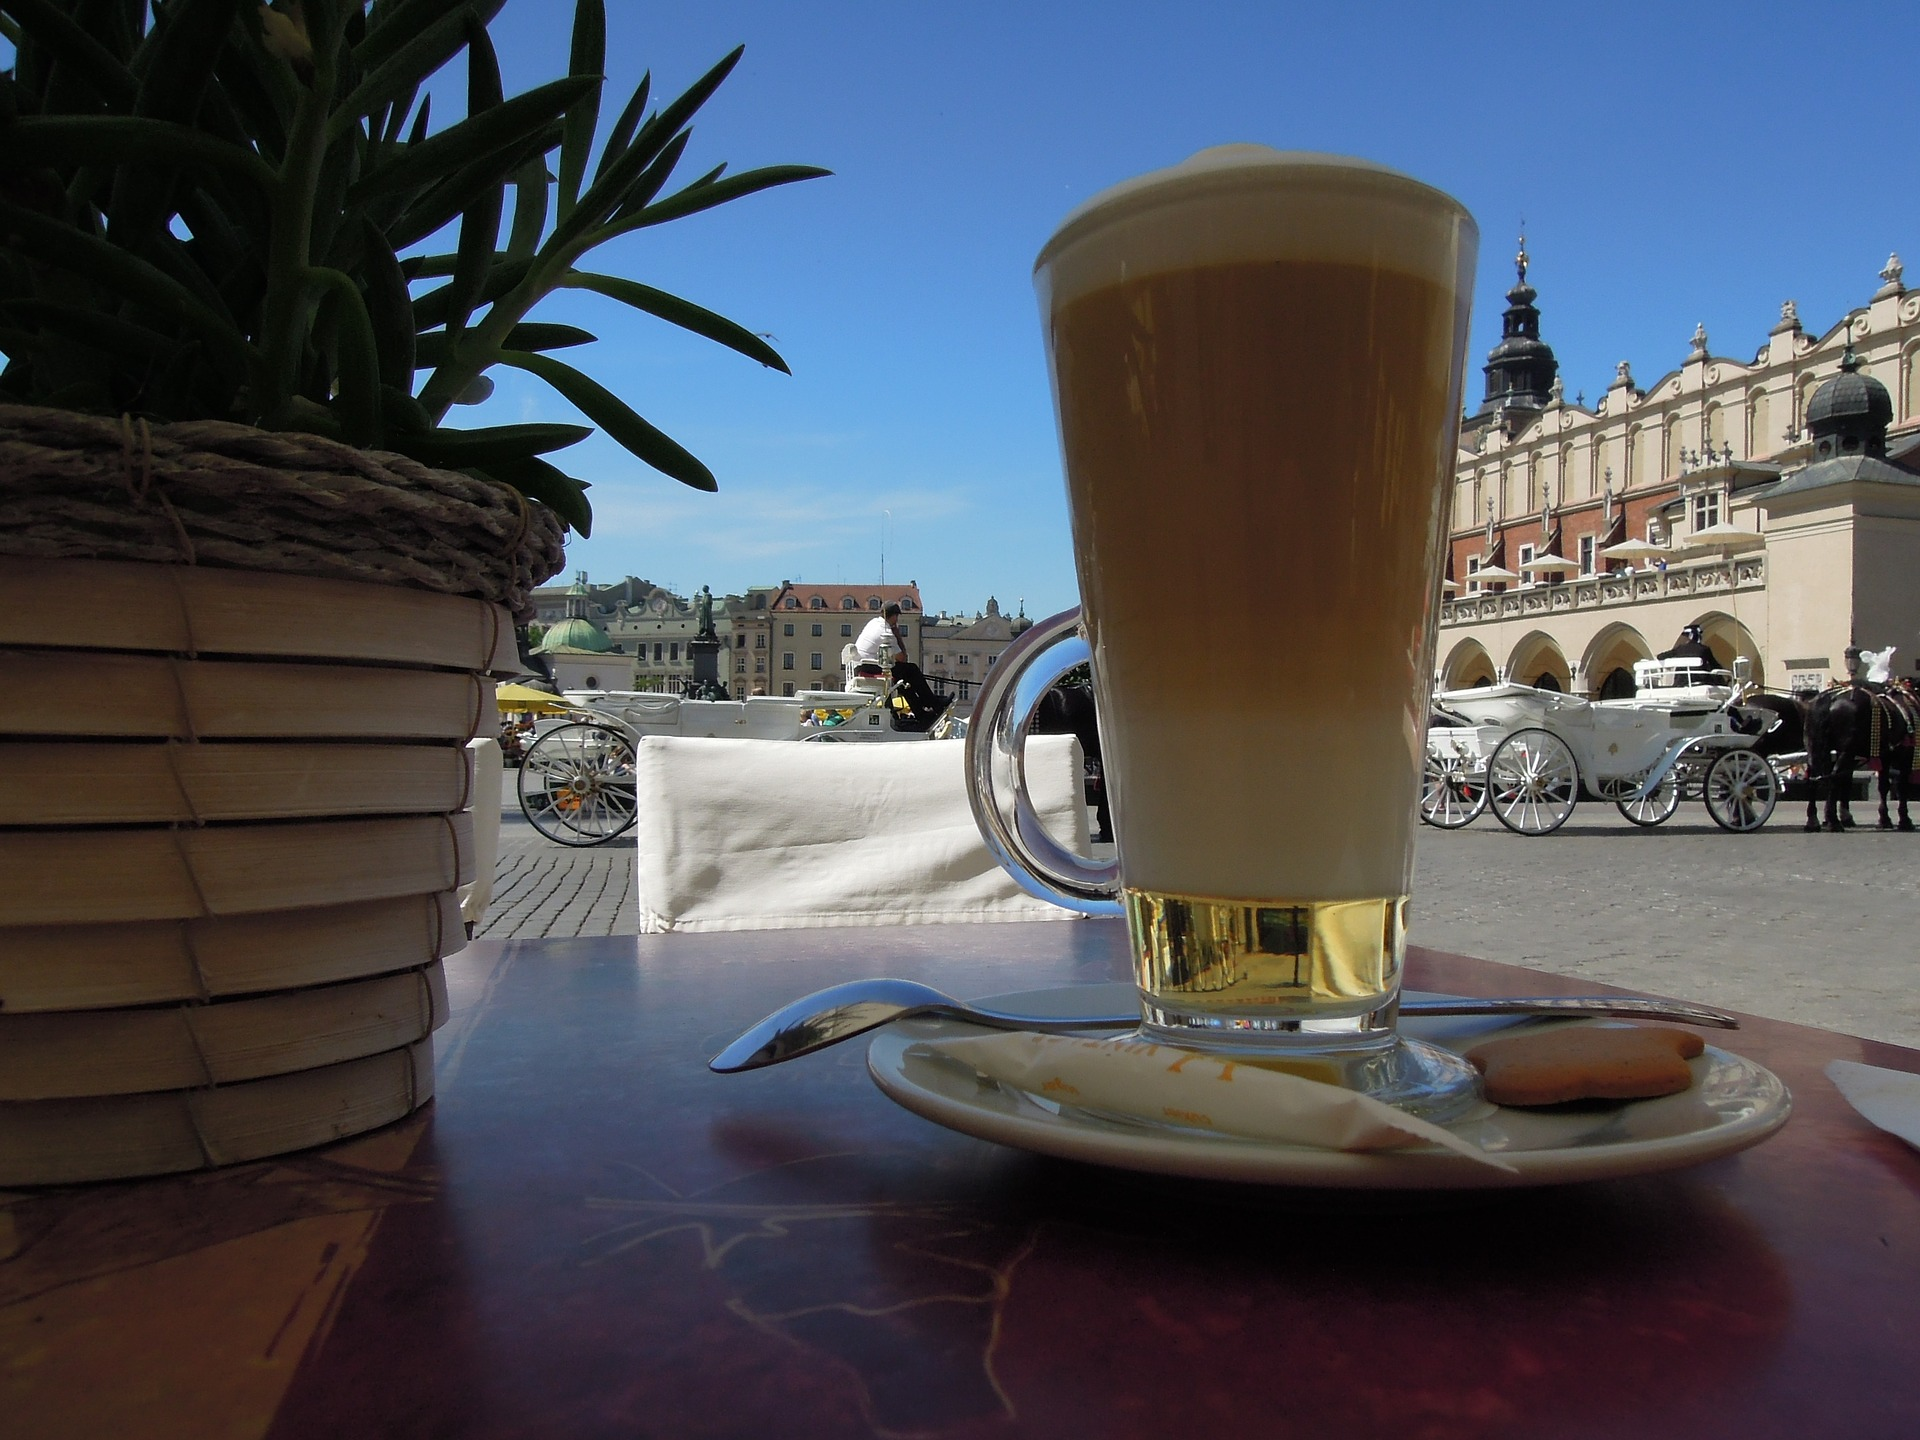 Kraków restaurants, cafes and clubs